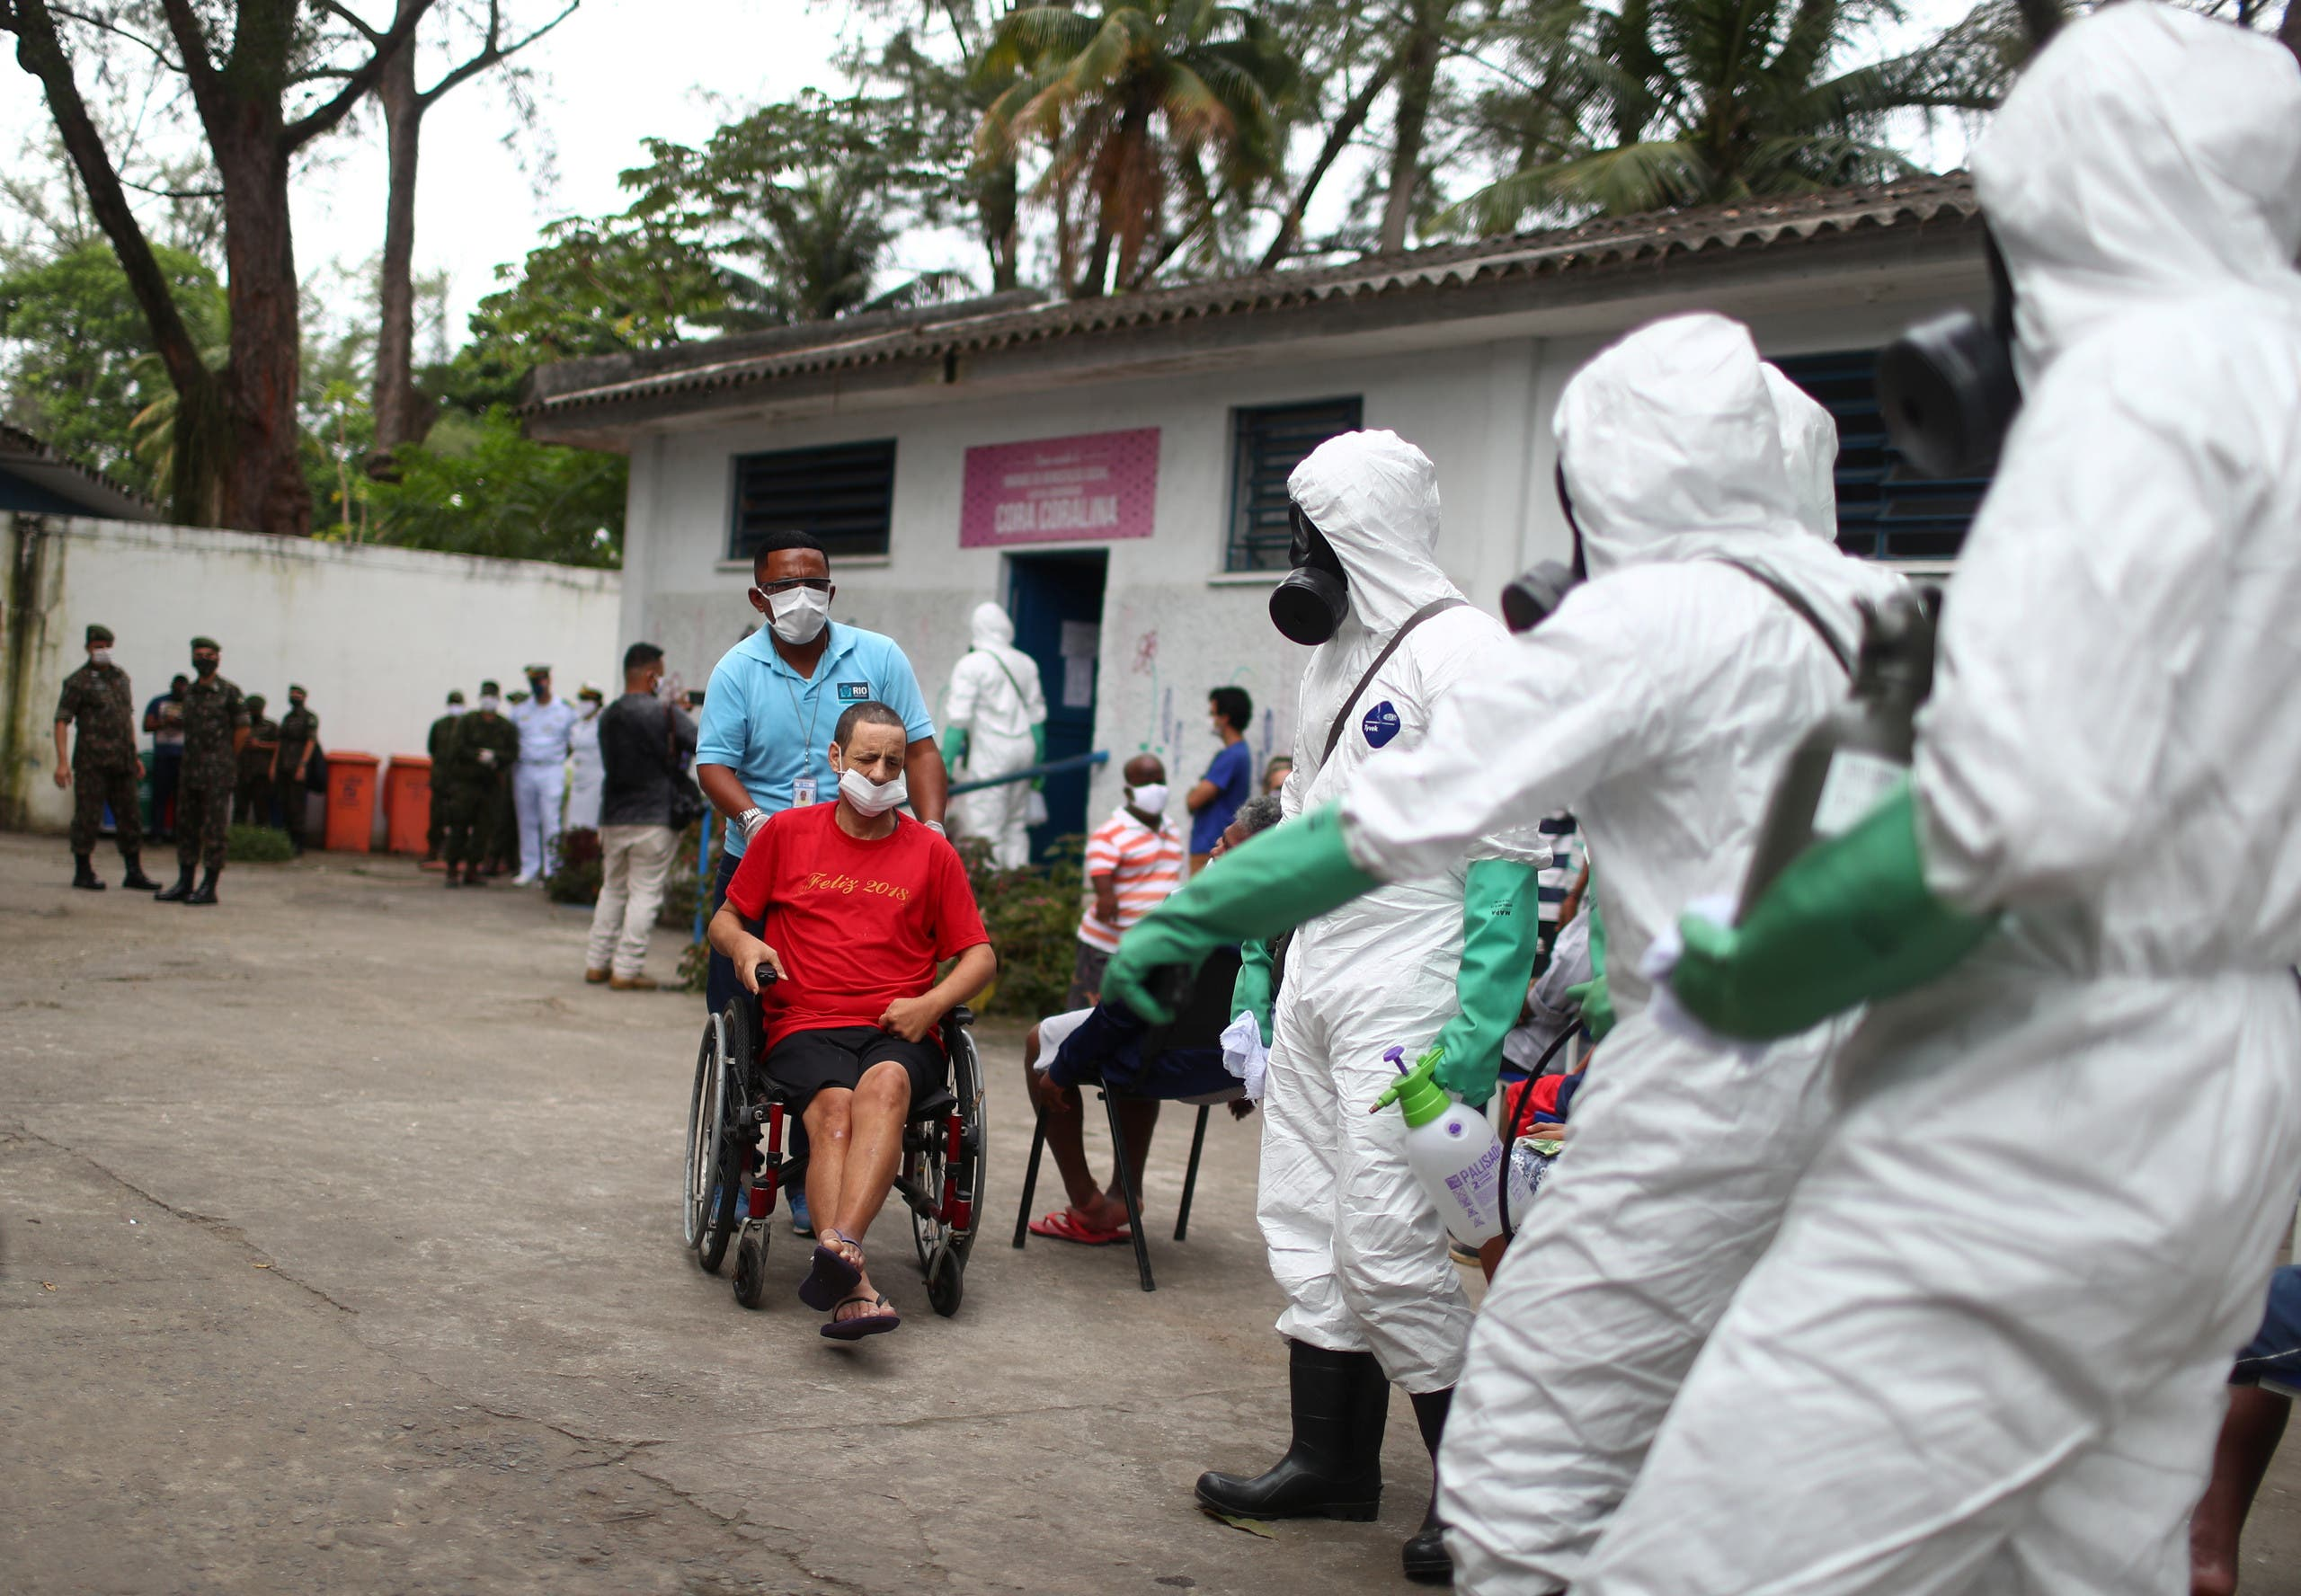 Brazilian army officers disinfect a shelter for elderly people, homeless and patients with mental disorders, amid concerns of the spread of the coronavirus, in Rio de Janeiro, Brazil, May 14, 2020. (Reuters)